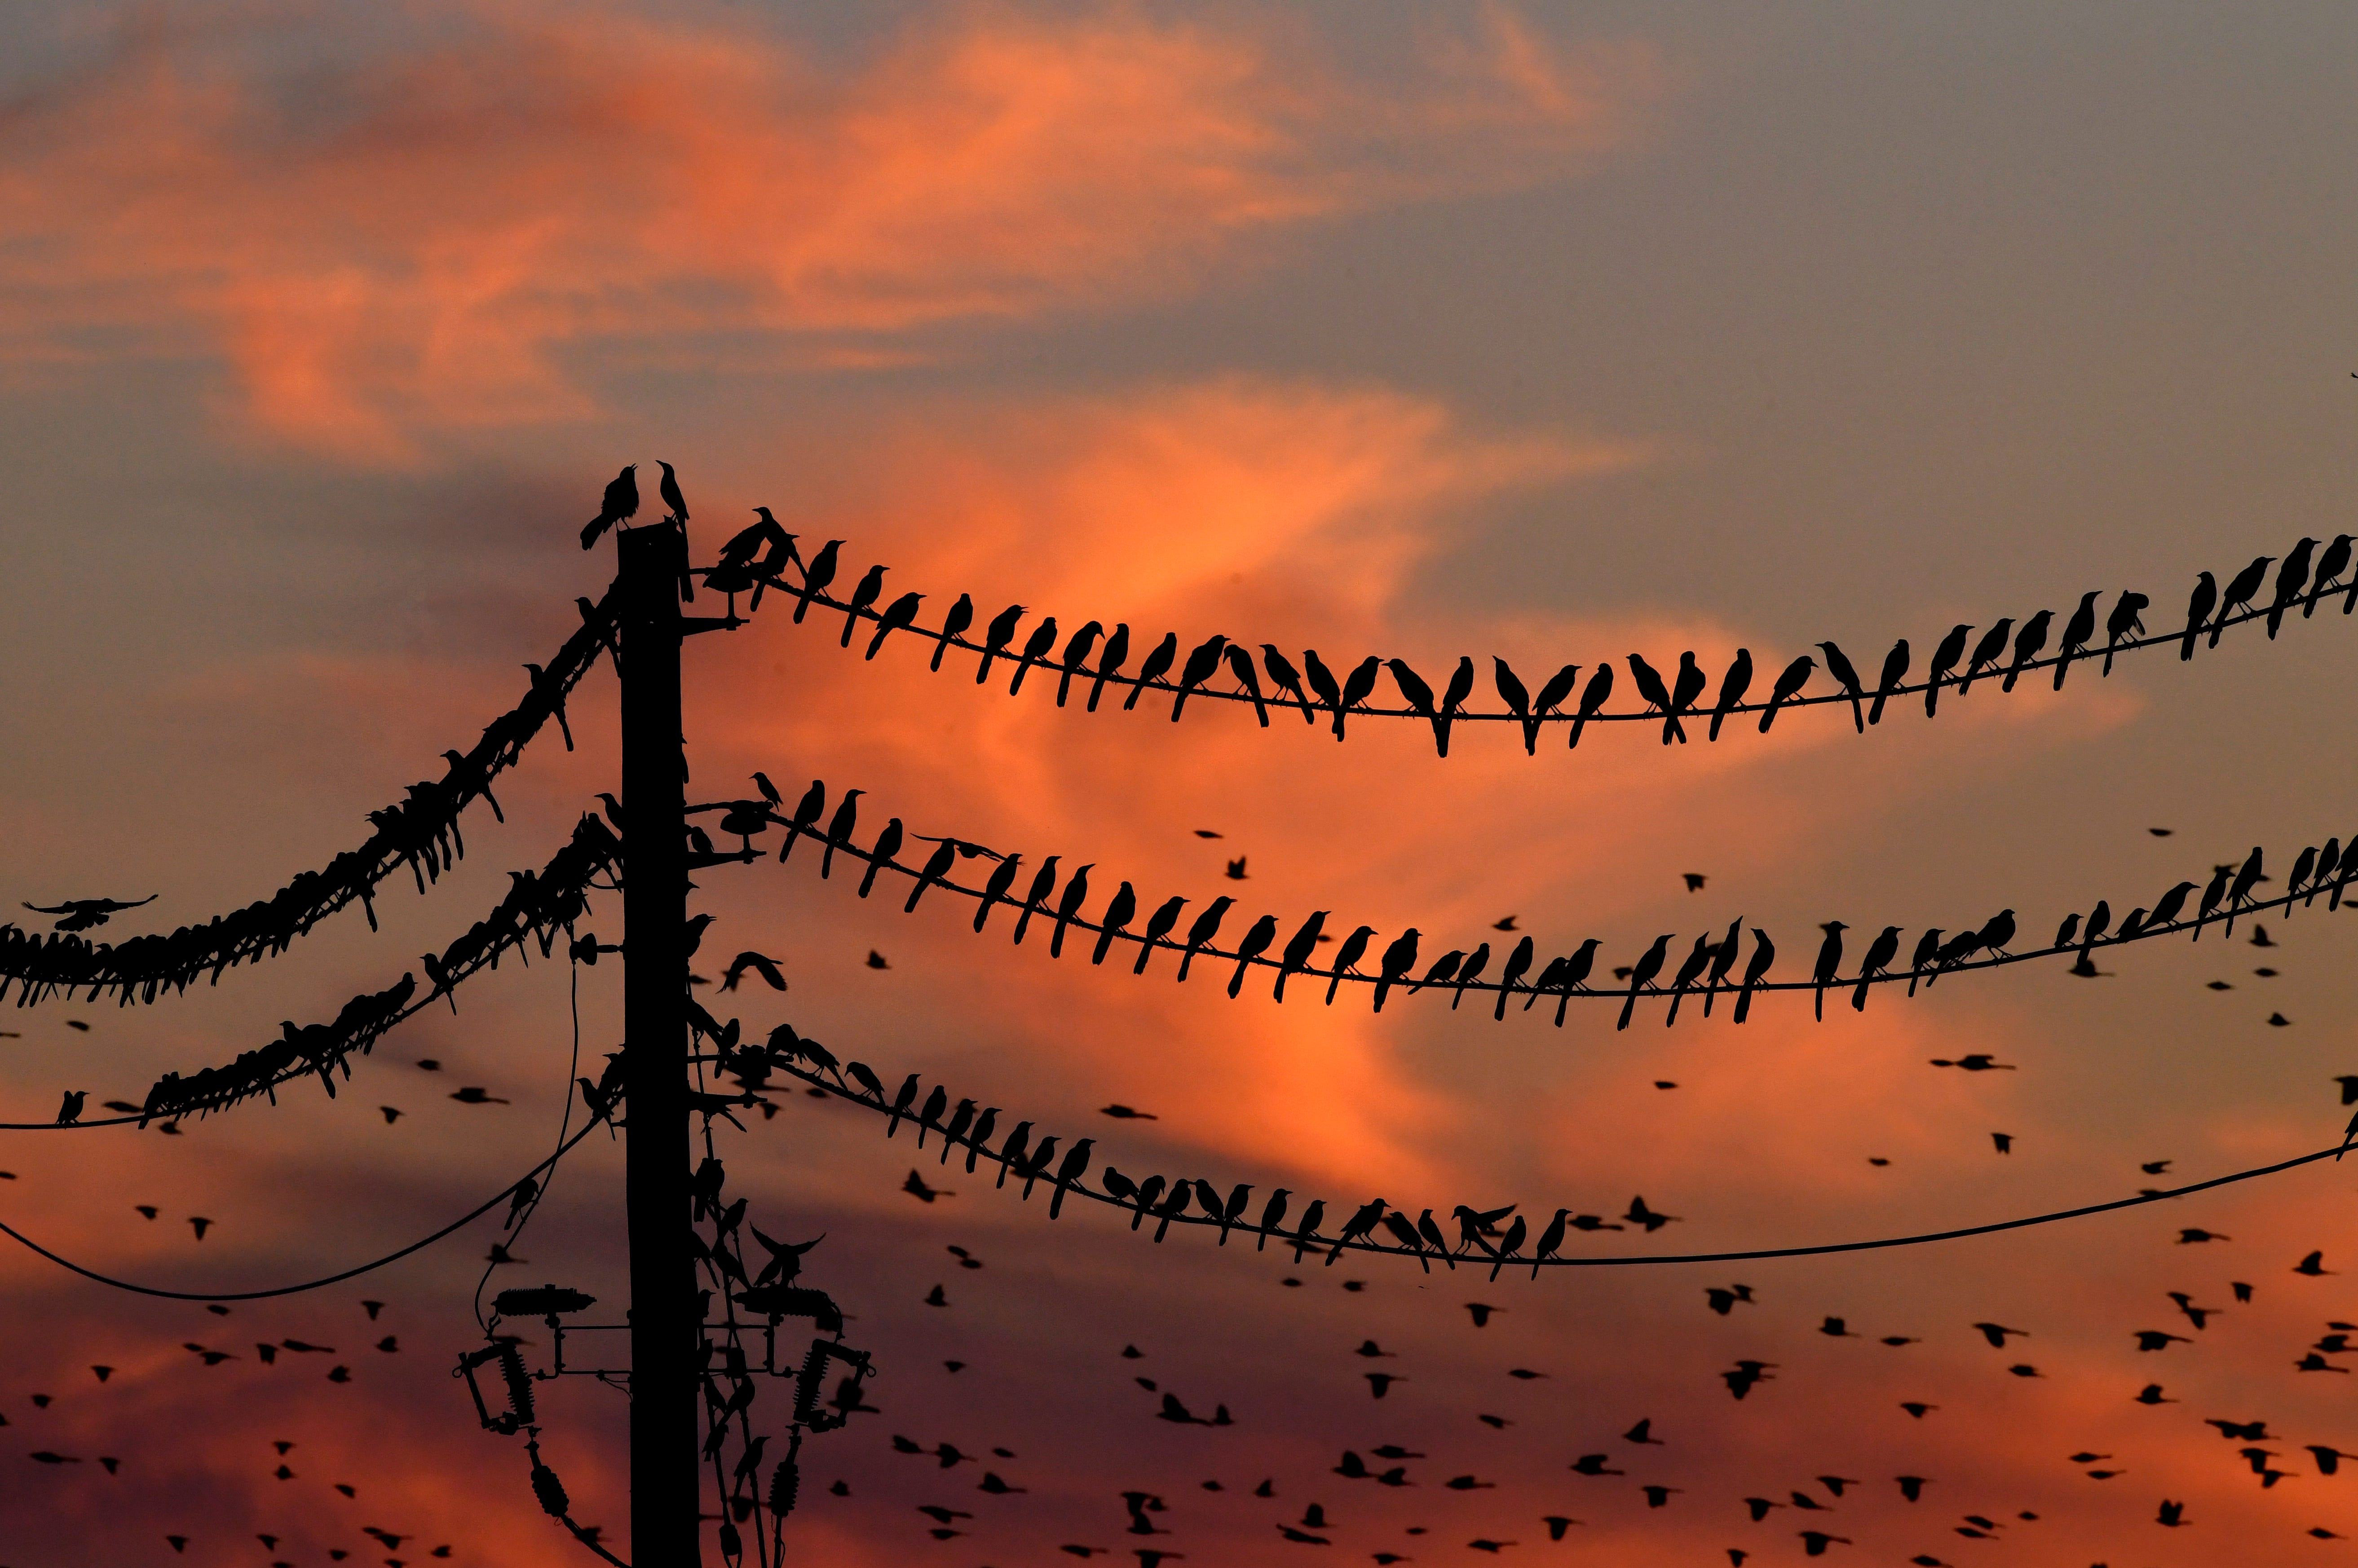 As the sun sets Thursday, grackles flock and cackle in the skies over the western side of the Mall of Abilene.